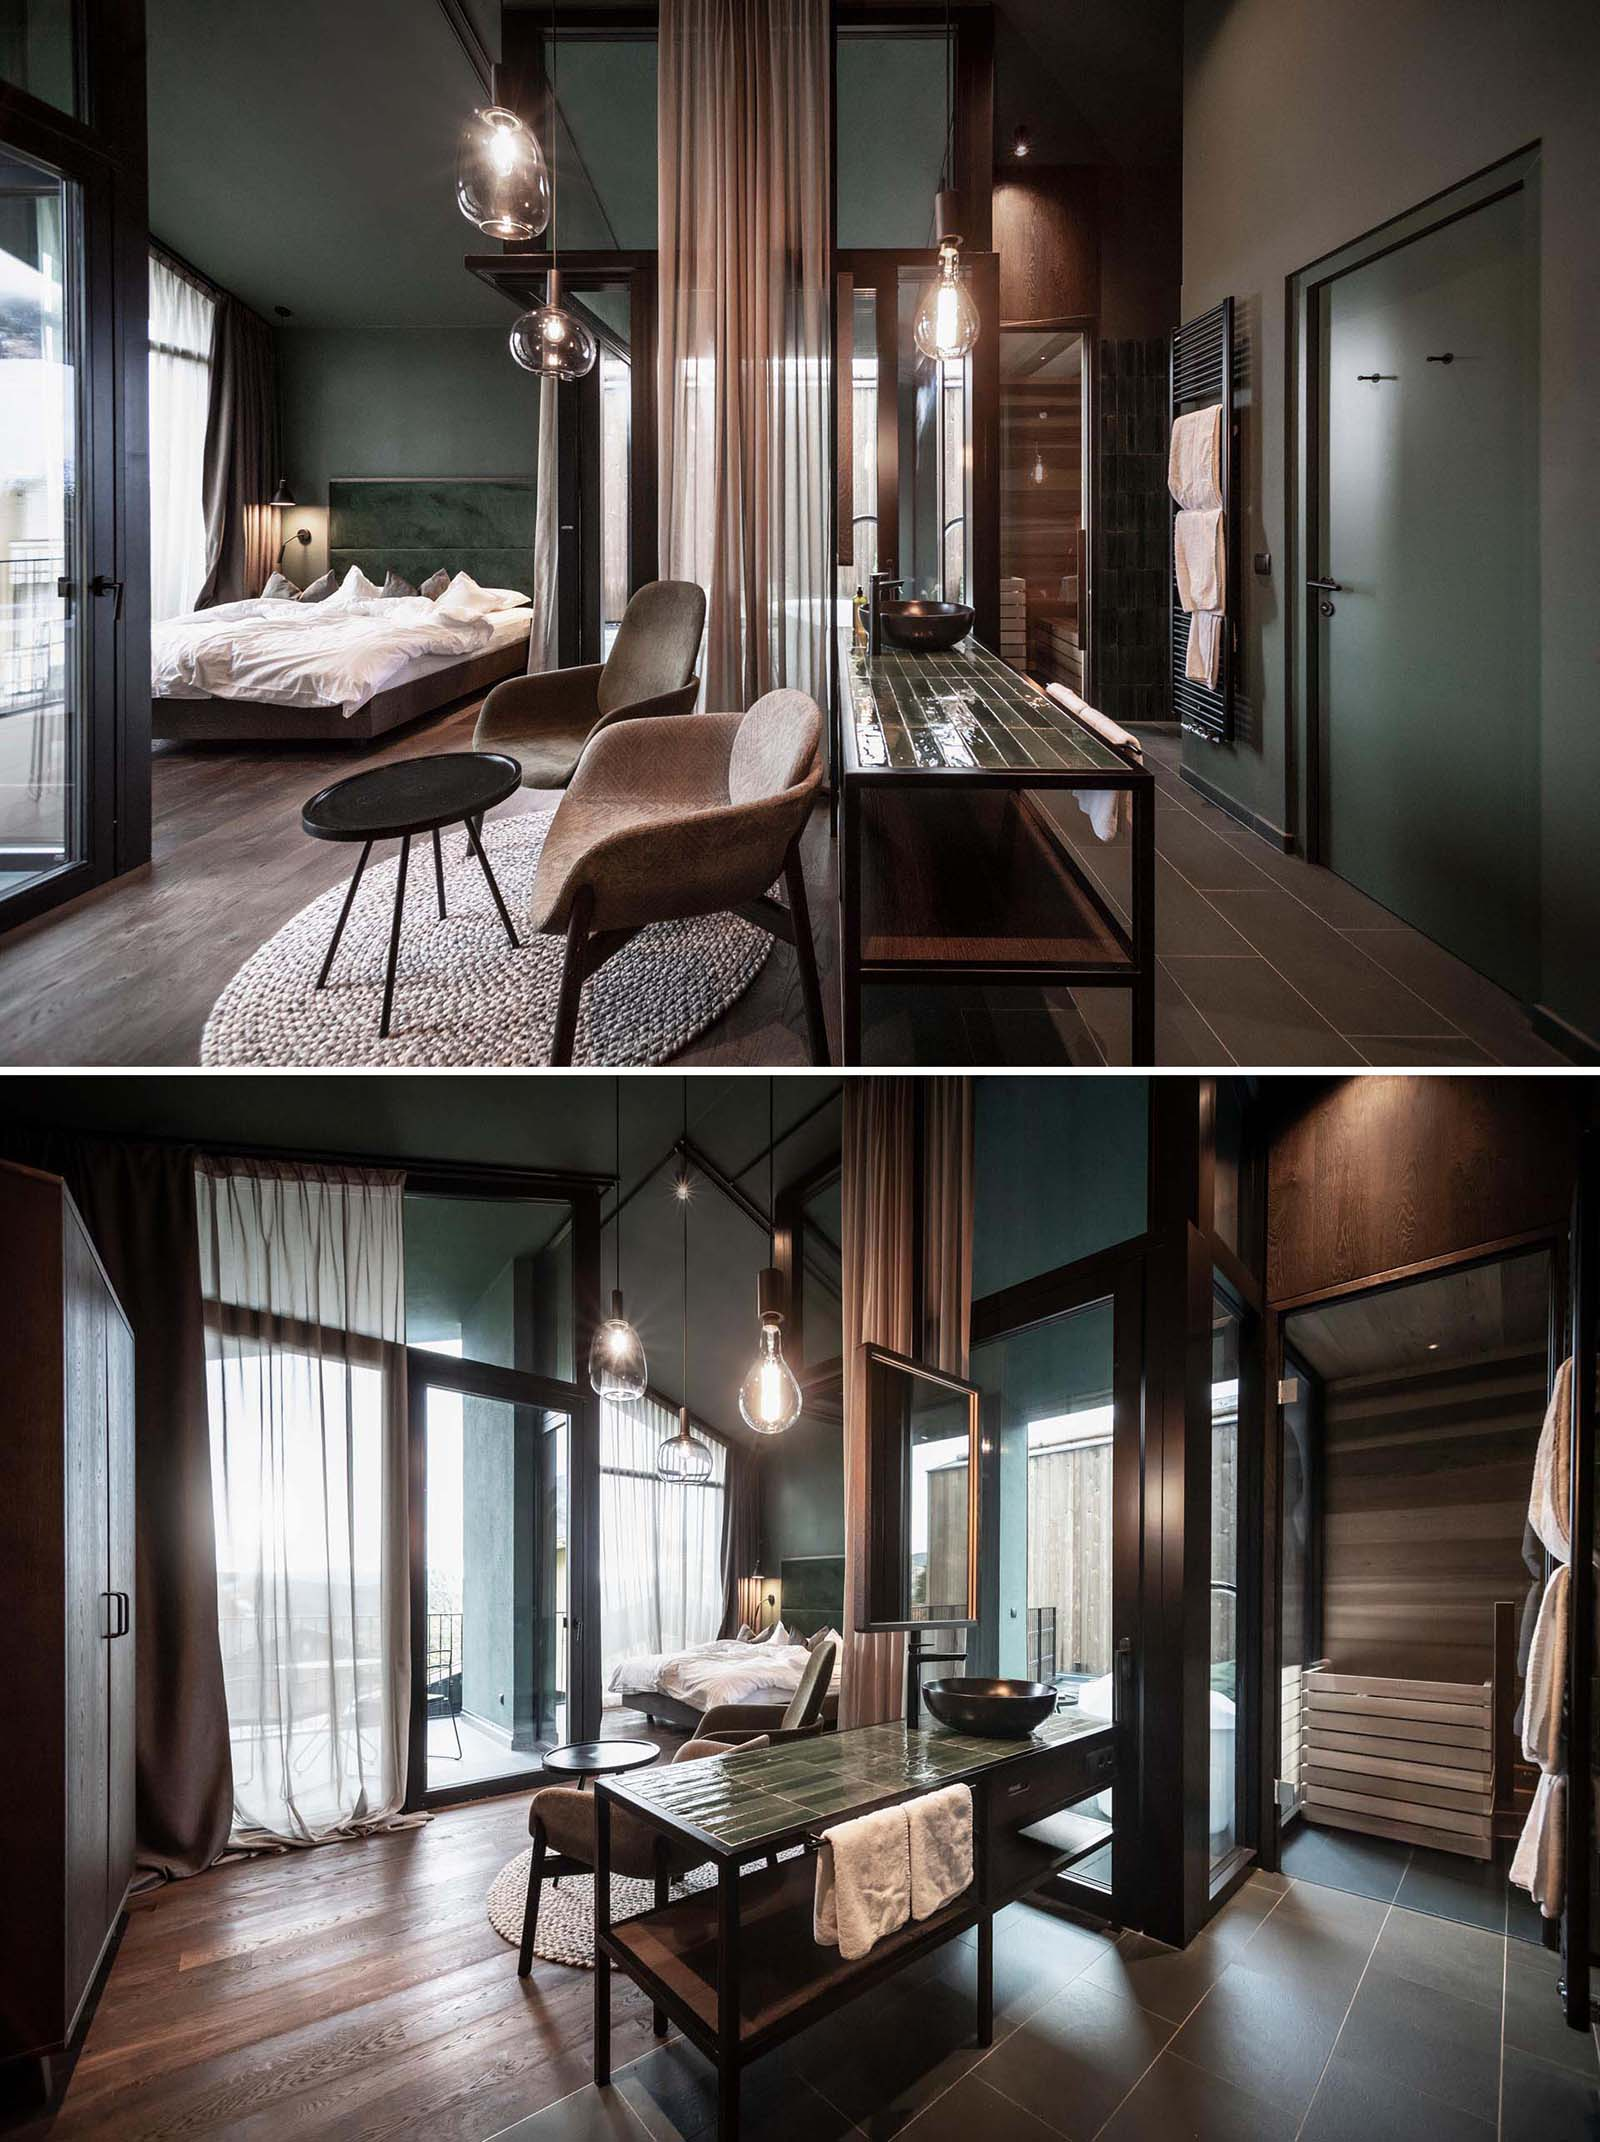 A modern hotel room with an open bathroom, a glass walled bedroom, and outdoor bathtubs.